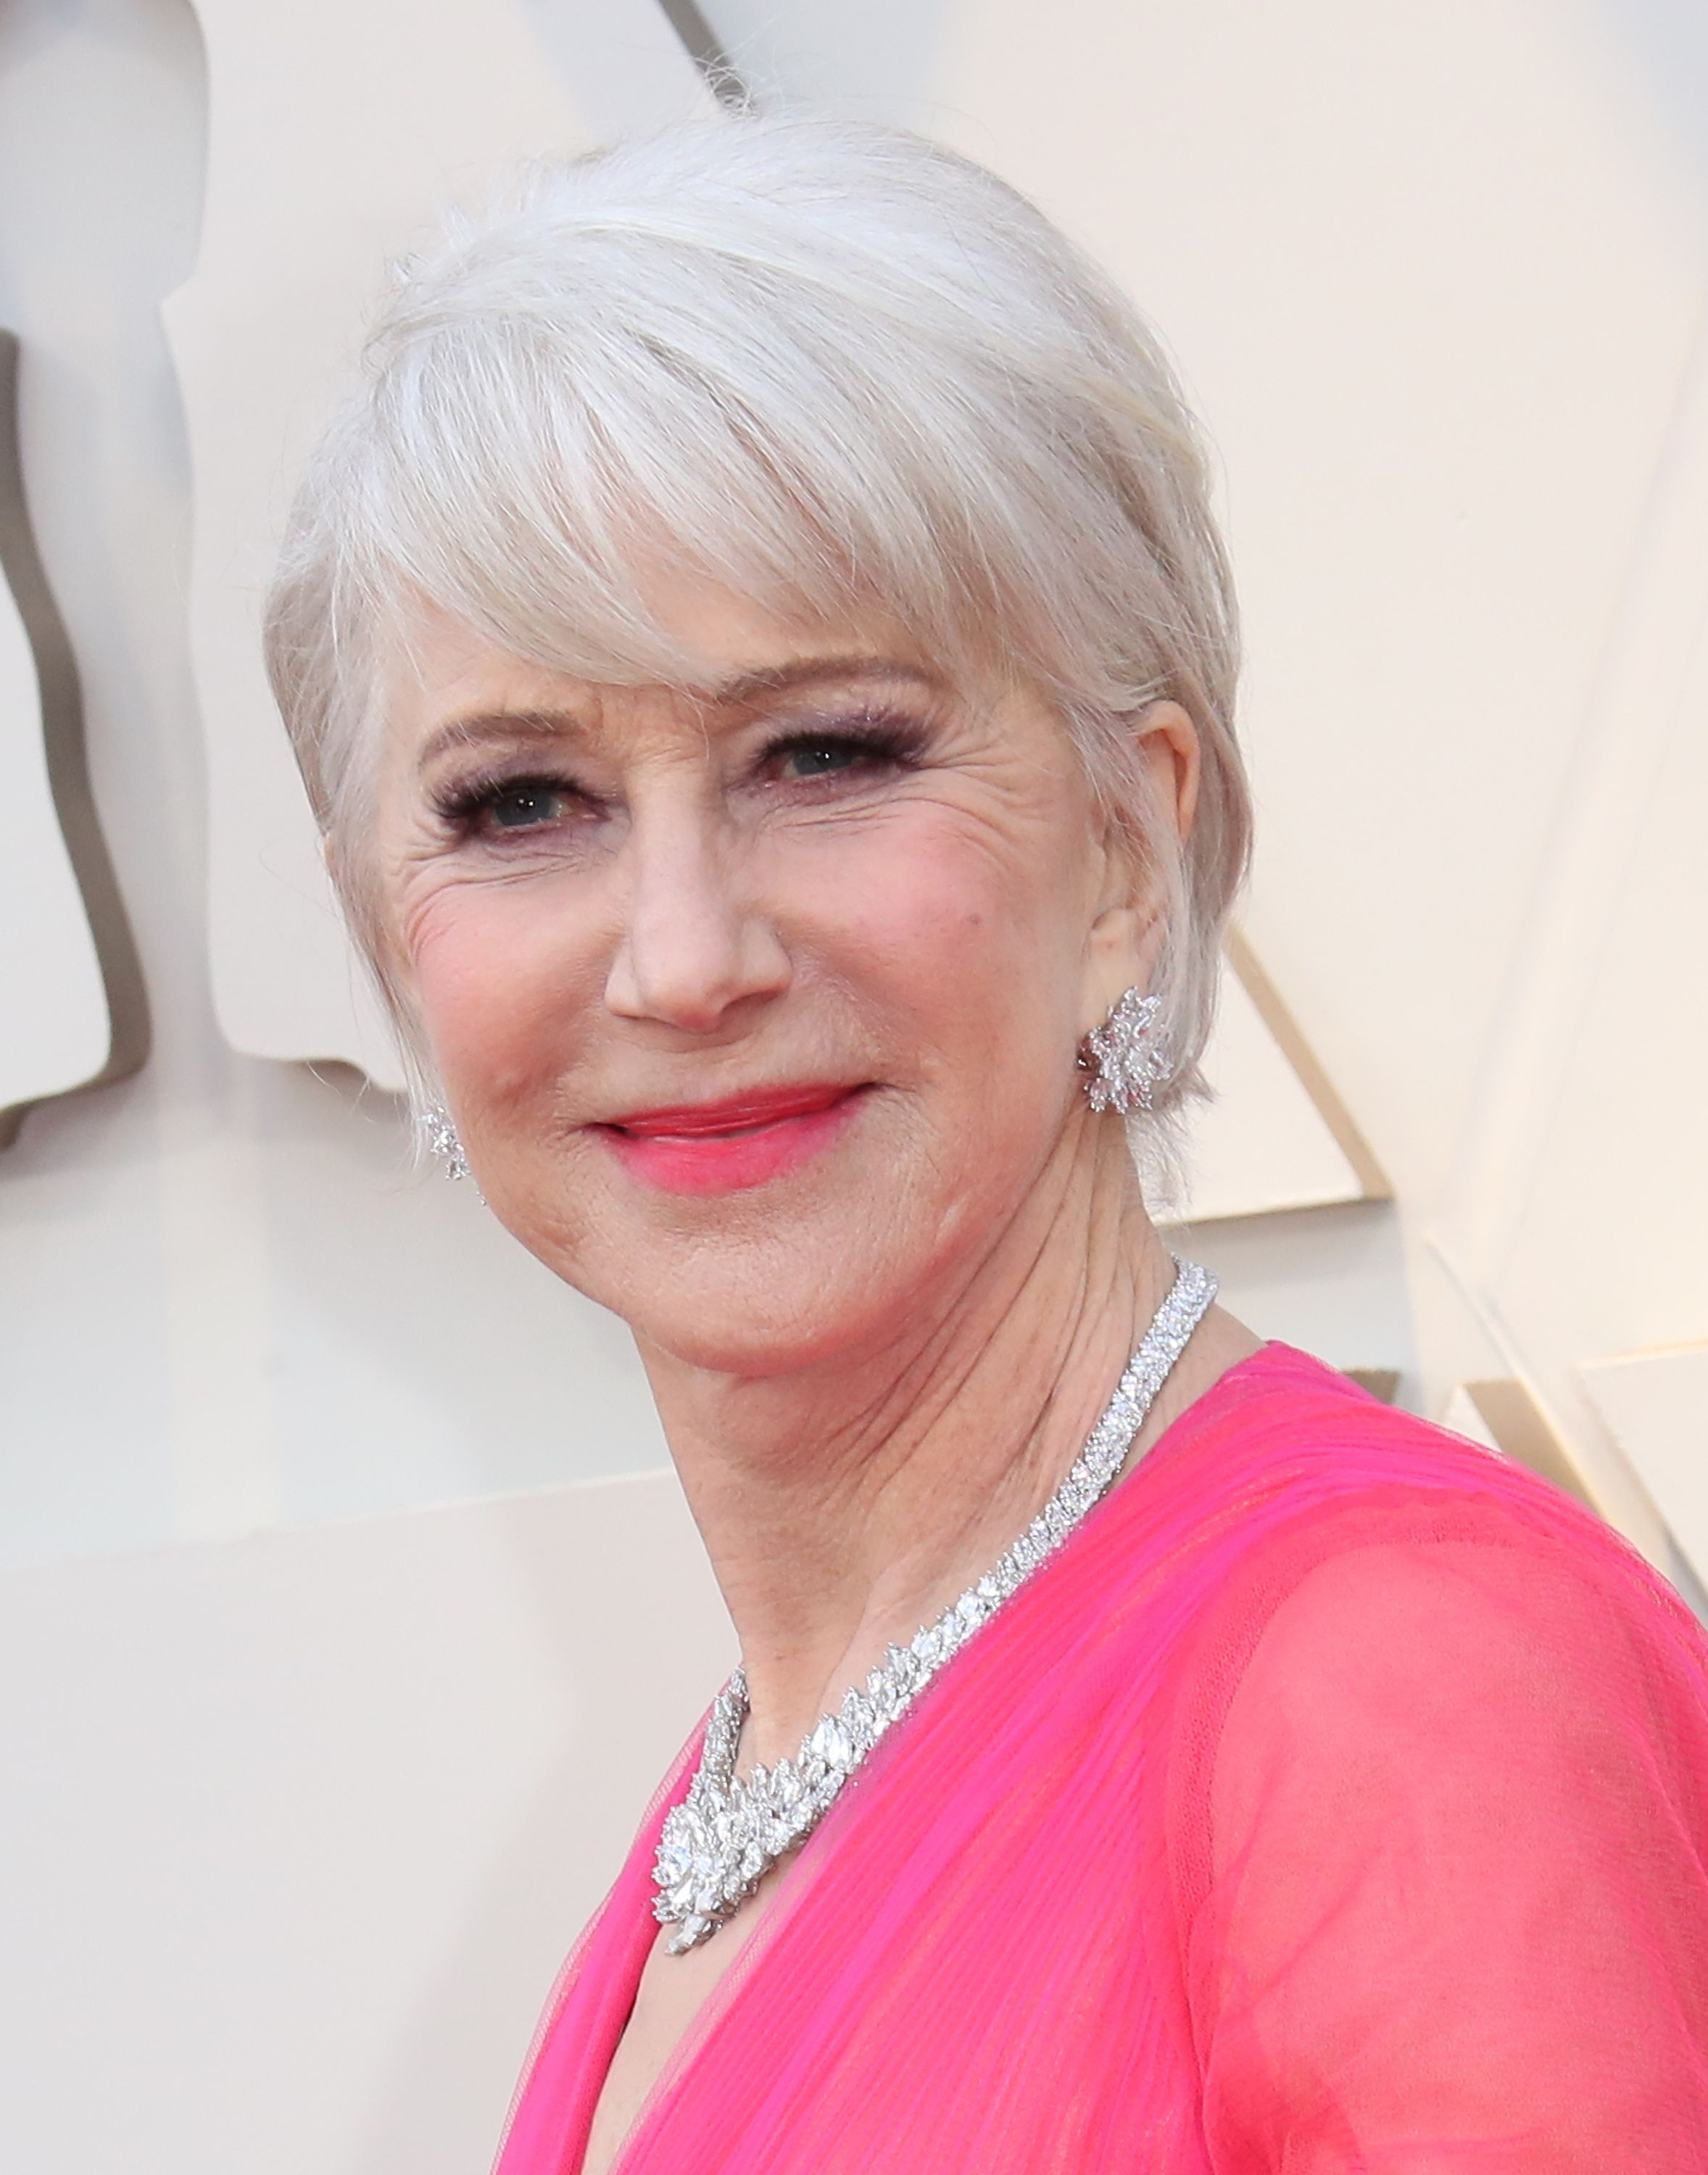 50 beautiful hairstyles for women at every age - good